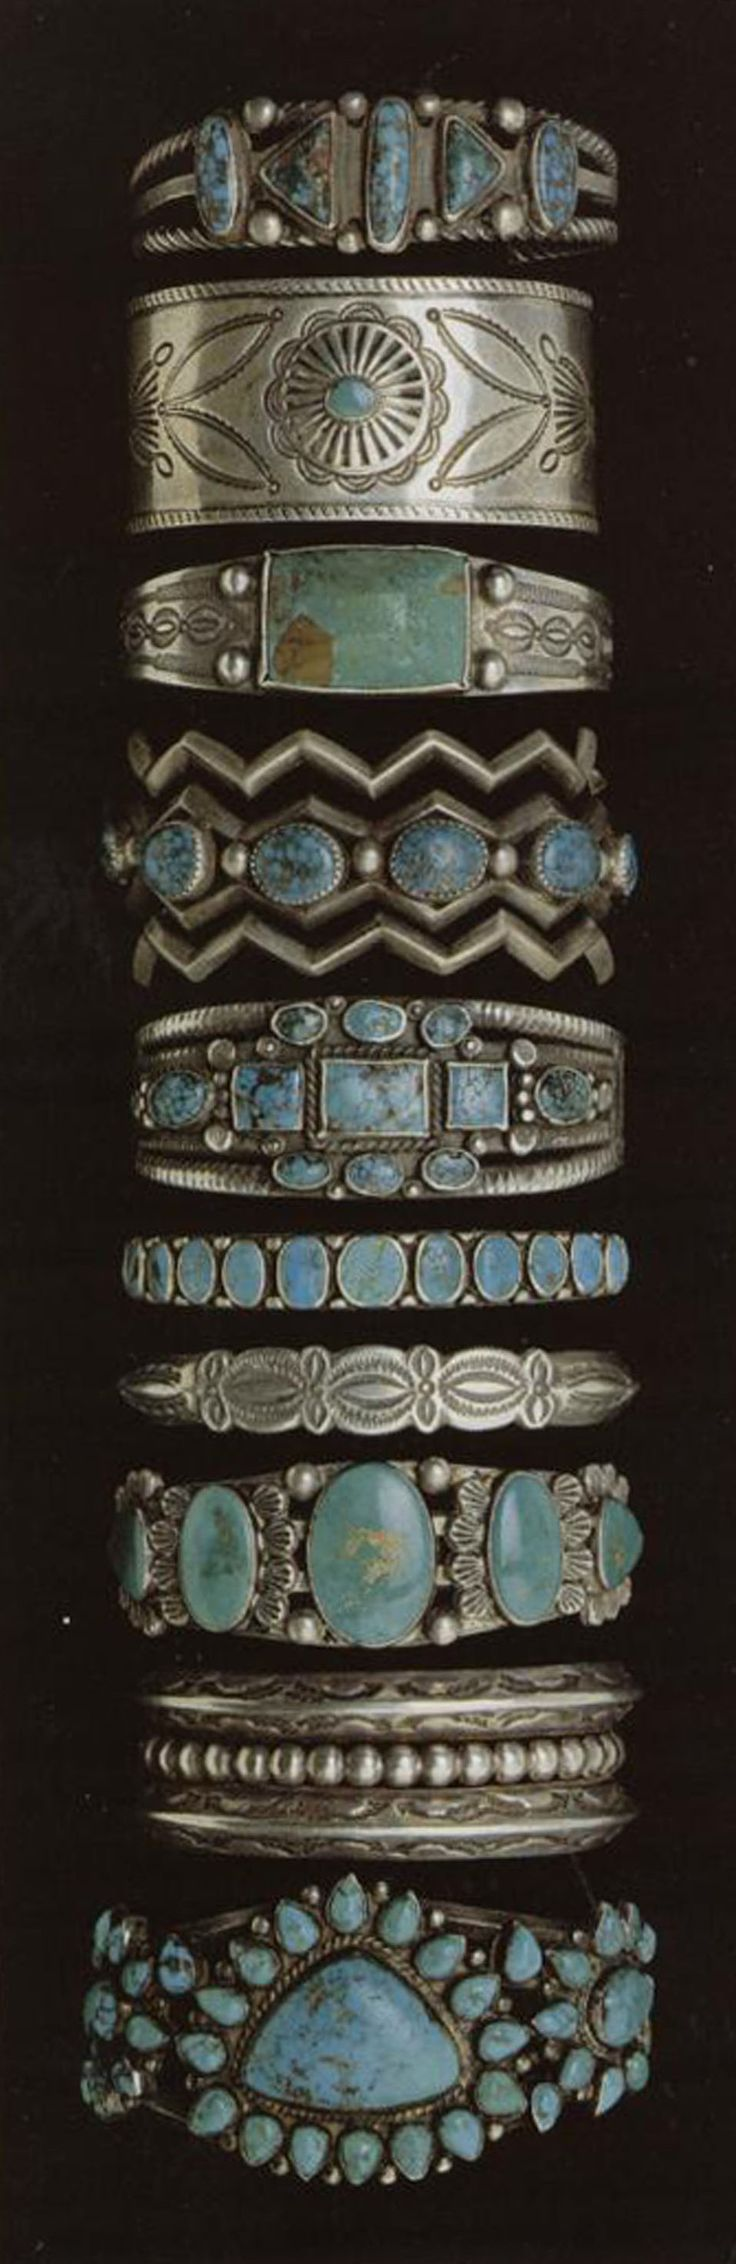 Navajo cuffs from the Millicent Rogers Collection